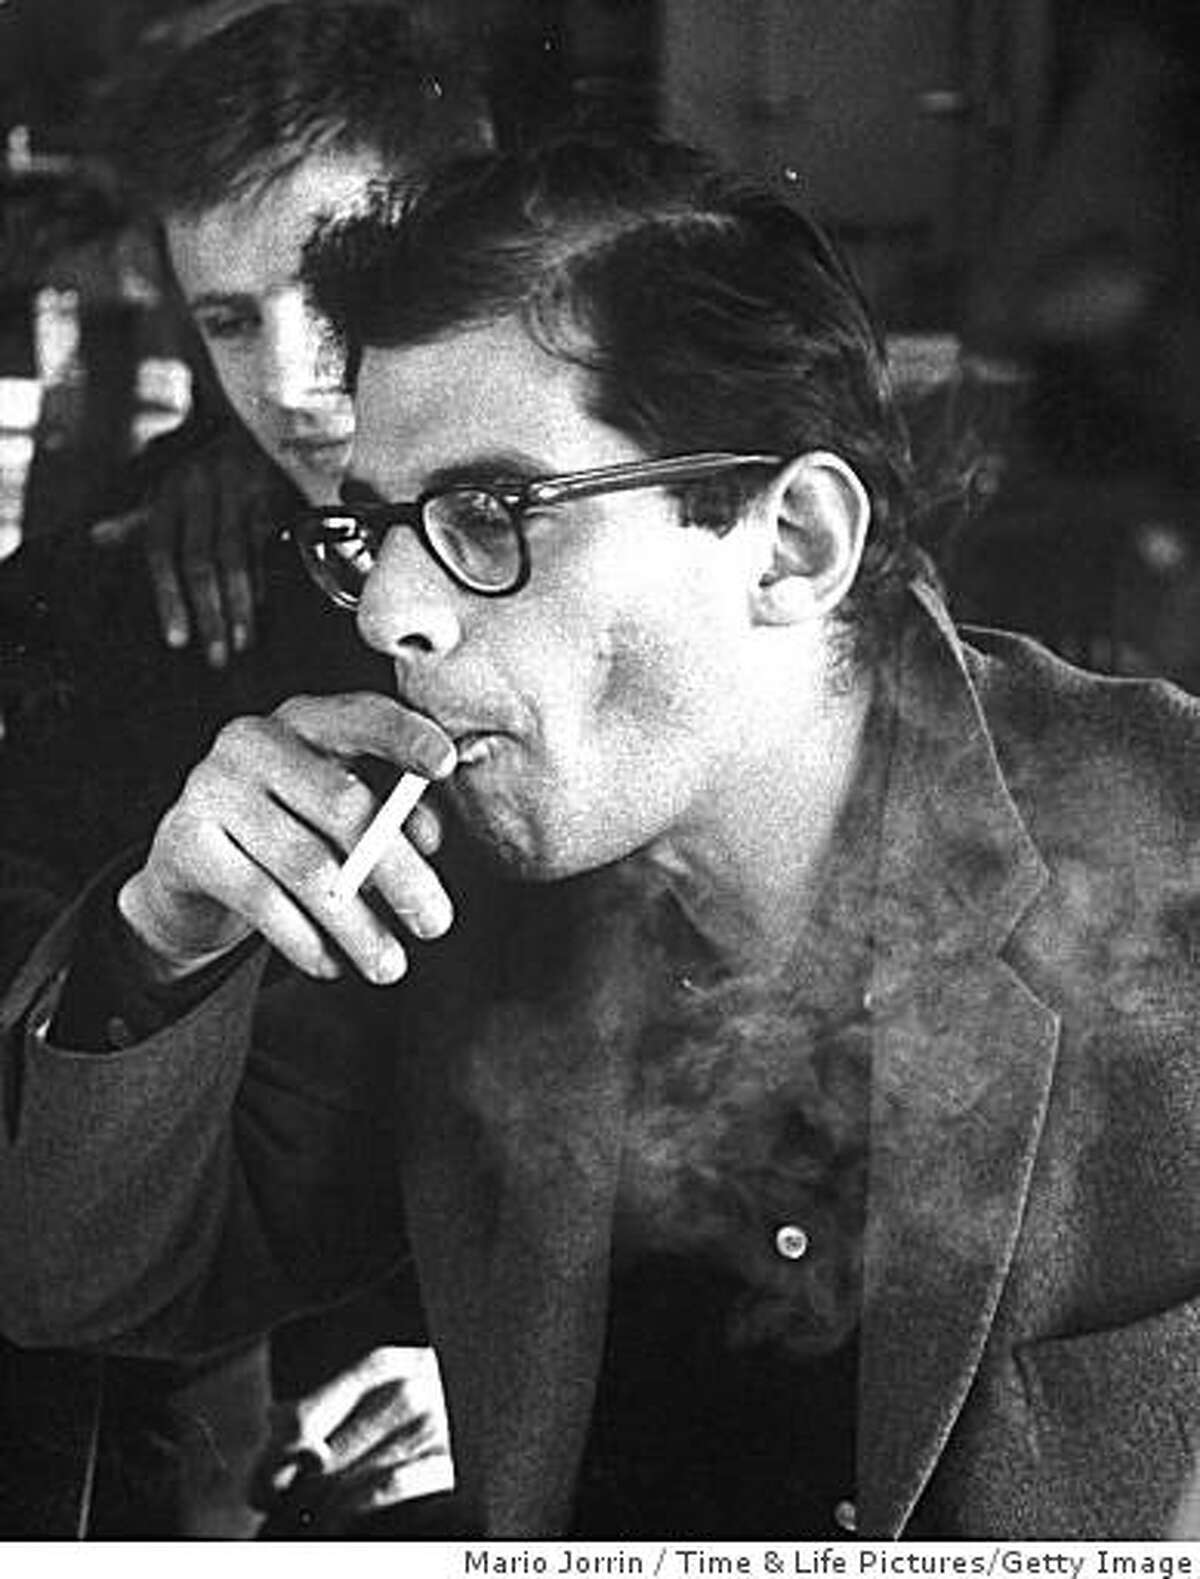 Content Date: 1/1/1960 Beat poet Allen Ginsberg (pre - beard) taking drag on cigarette. (Photo by Mario Jorrin/Pix Inc./Time Life Pictures/Getty Images) Ran on: 10-03-2007 Lawrence Ferlinghetti first published Howl.'' He says he sees the present situation as a repeat in spades of what happened in the 1950s.'' Ran on: 10-03-2007 Lawrence Ferlinghetti first published Howl.'' He sees FCC pres- sure on broadcasters as a repeat in spades of what happened in the 1950s.''